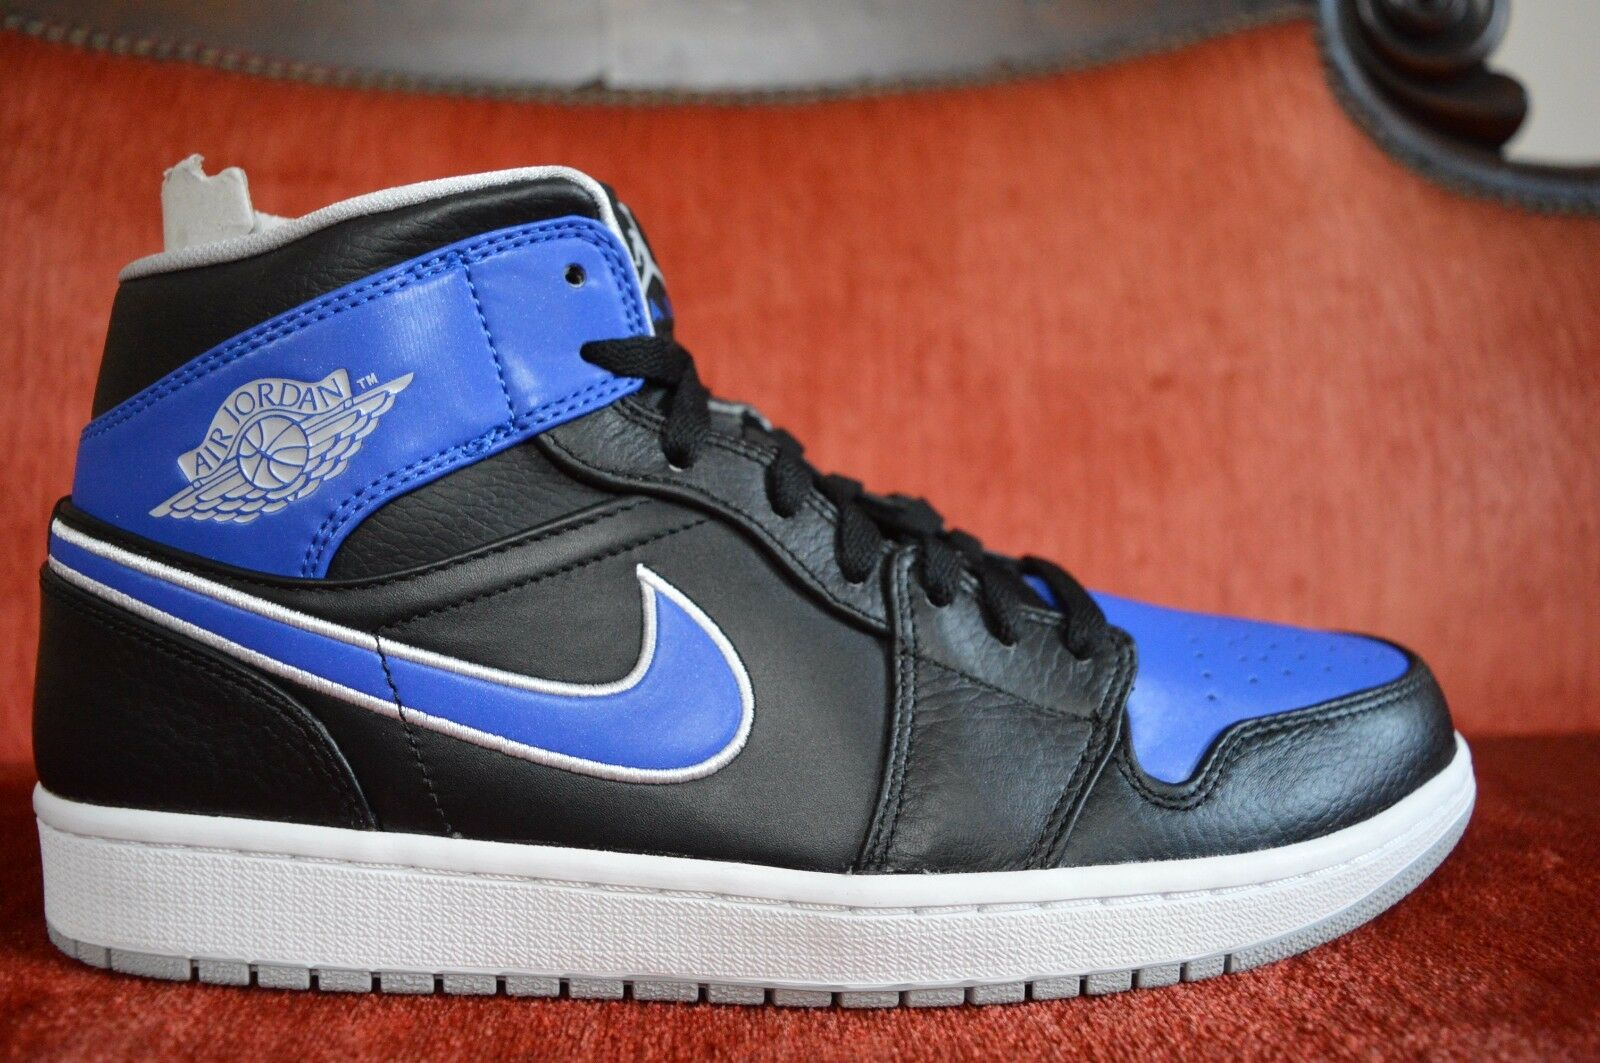 NIKE AIR JORDAN 1 MID BLACK GAME ROYAL 554724-007 high bred banned hare 11.5 NEW